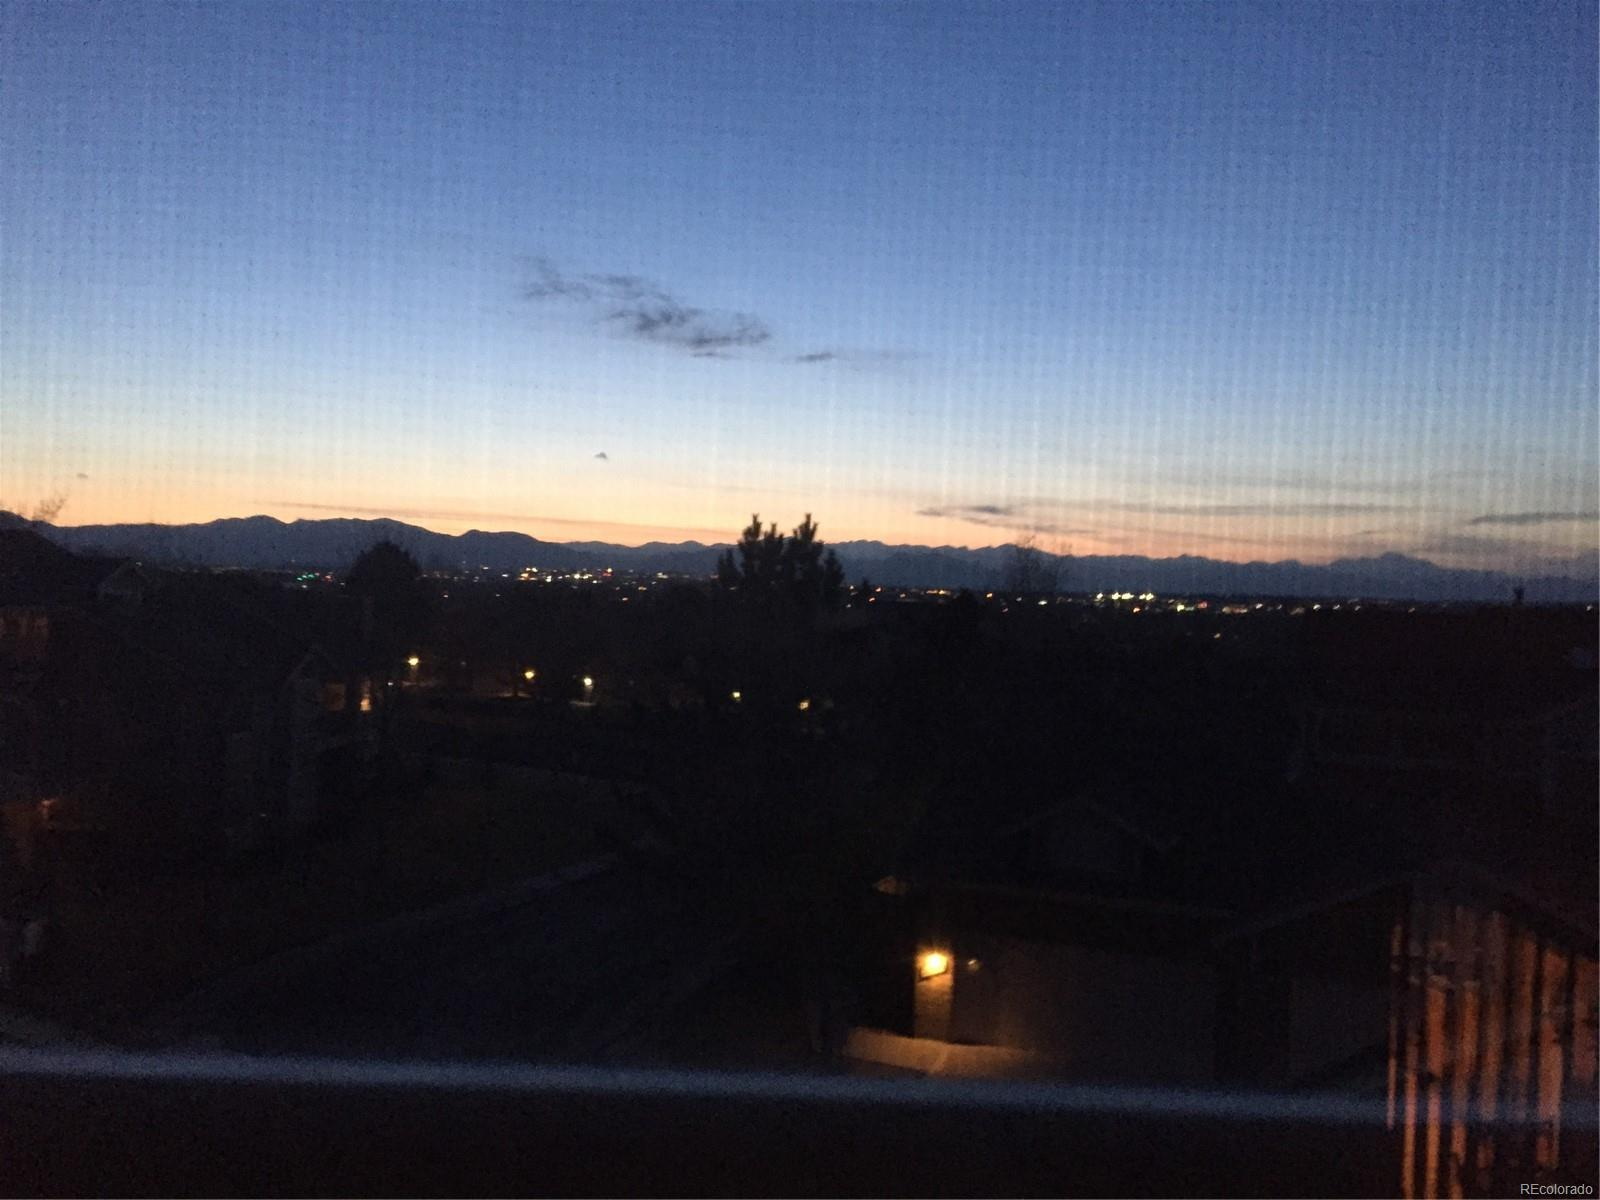 Mountain view after sunset